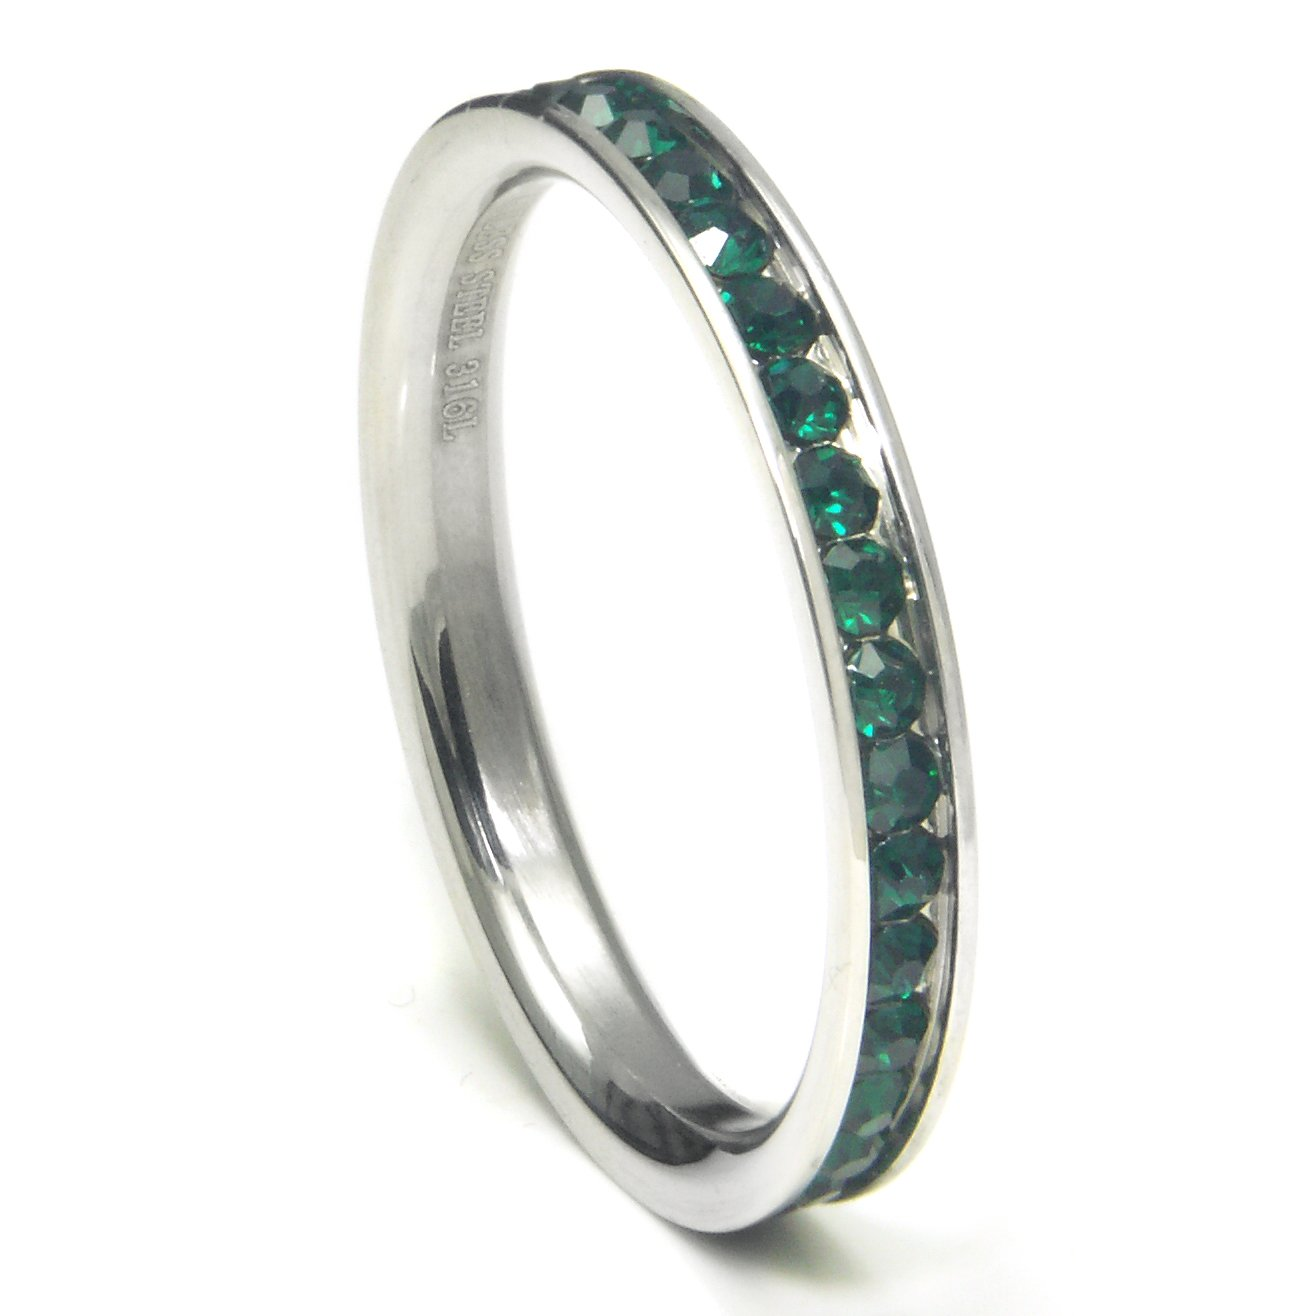 316L Stainless Steel Deep Green Cubic Zirconia CZ Eternity Wedding 3MM Band Ring Sz 8